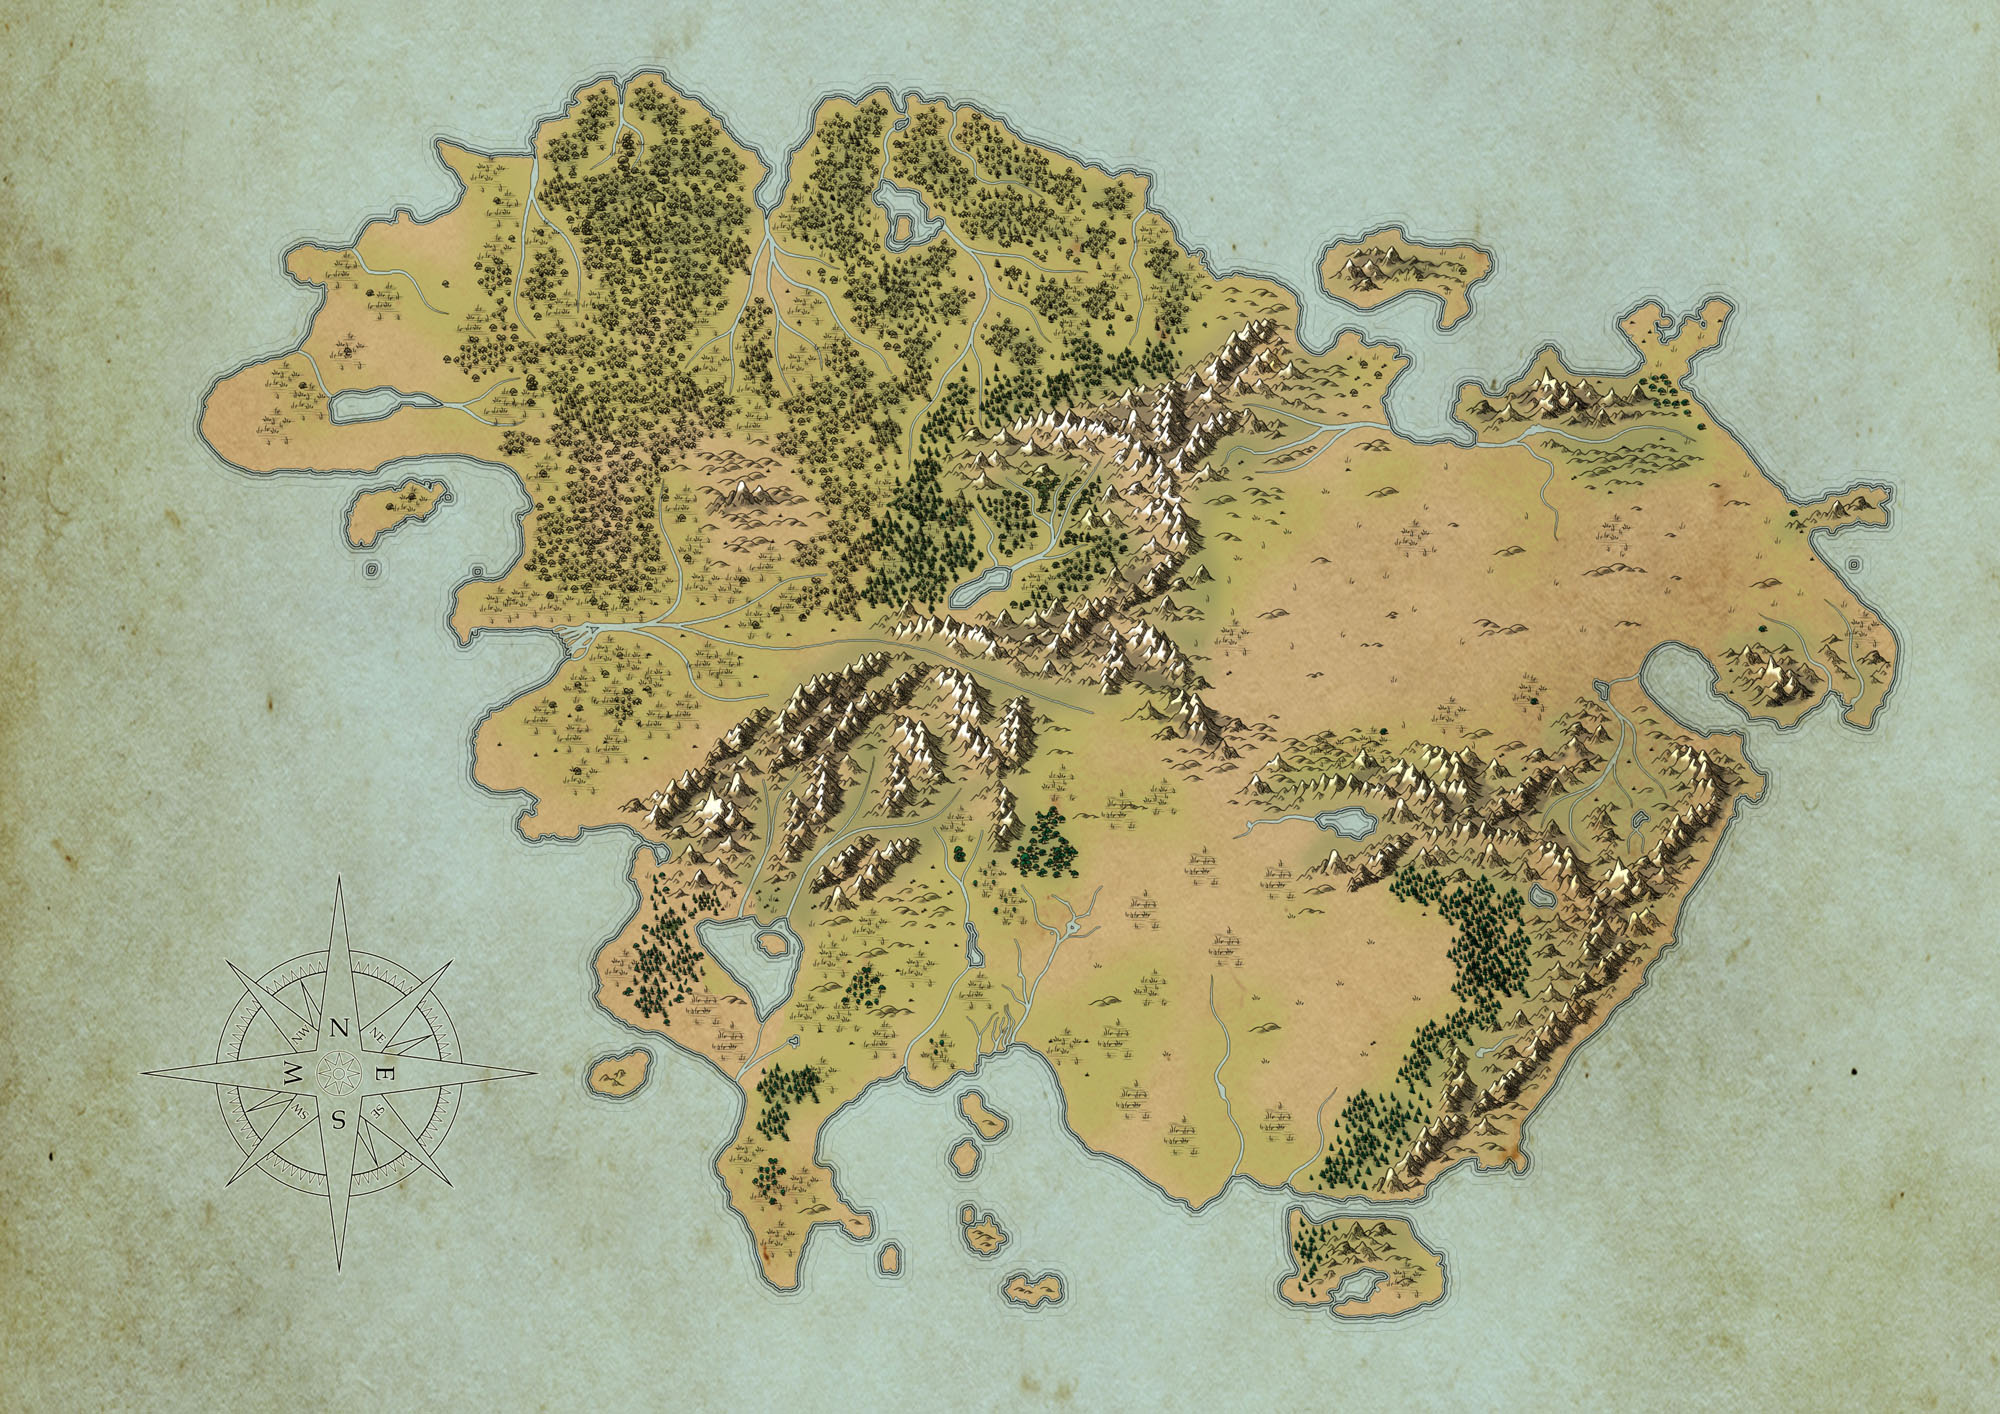 Map to the Original KOTRP world 52099d1360592560-fantasy-world-continent-map-feedback-crits-map_001_wip